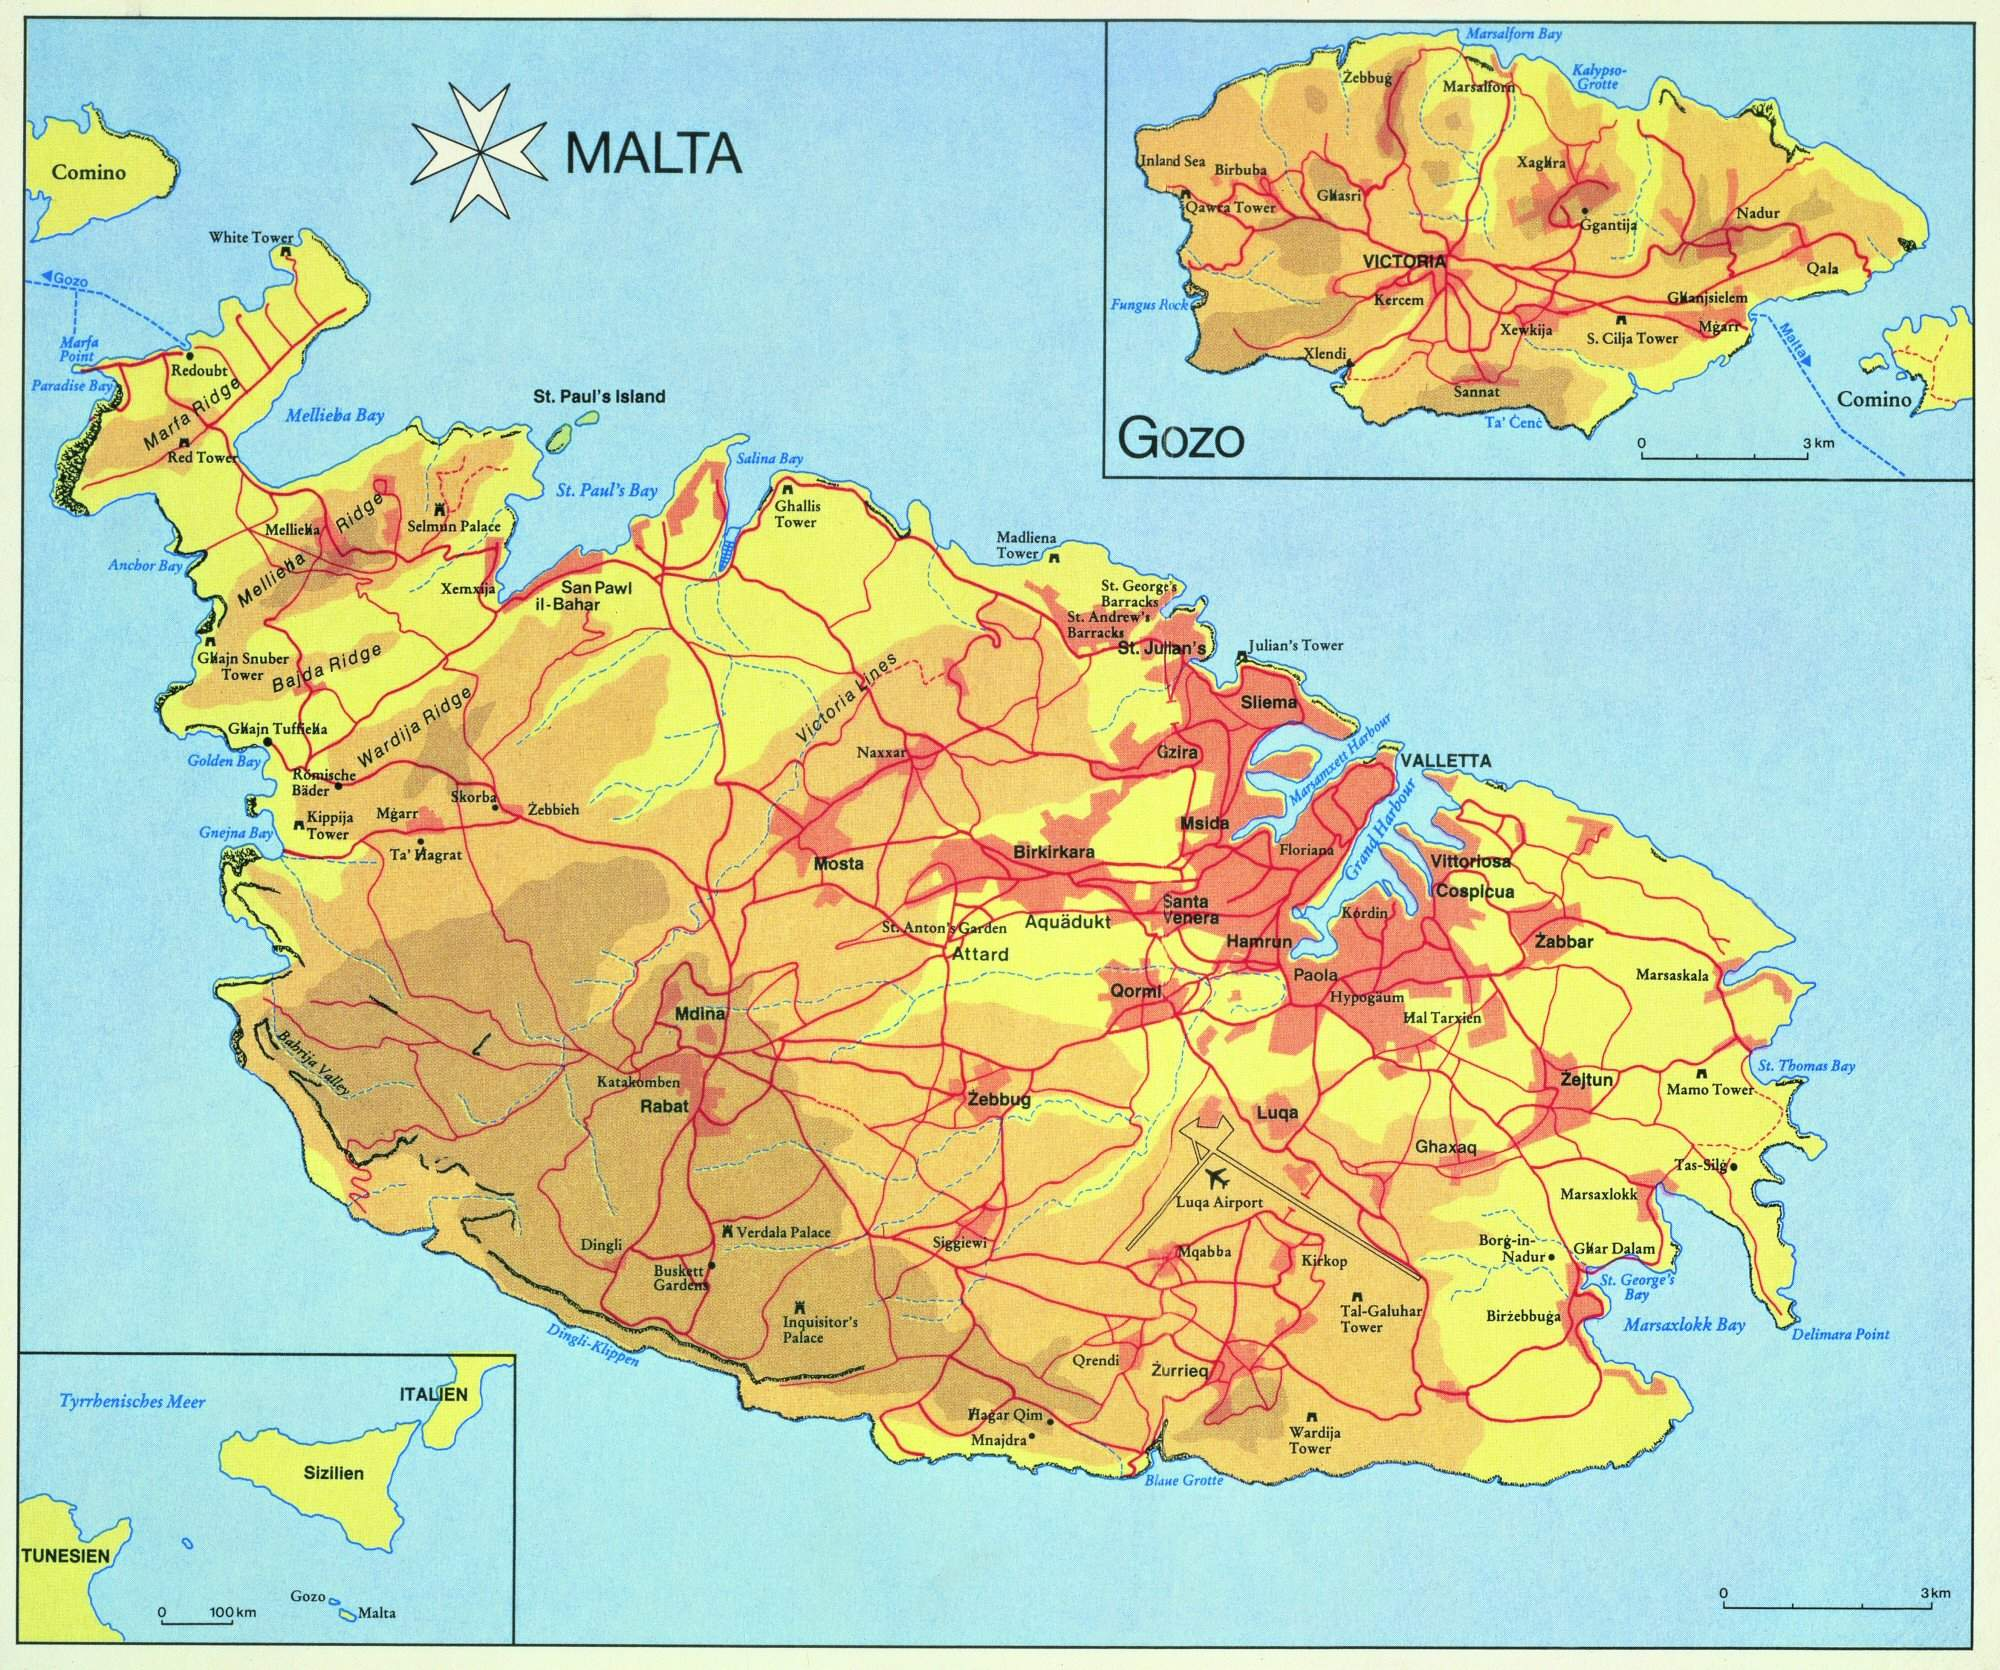 Cartina Di Malta Pdf.Large Malta Island Maps For Free Download And Print High Resolution And Detailed Maps